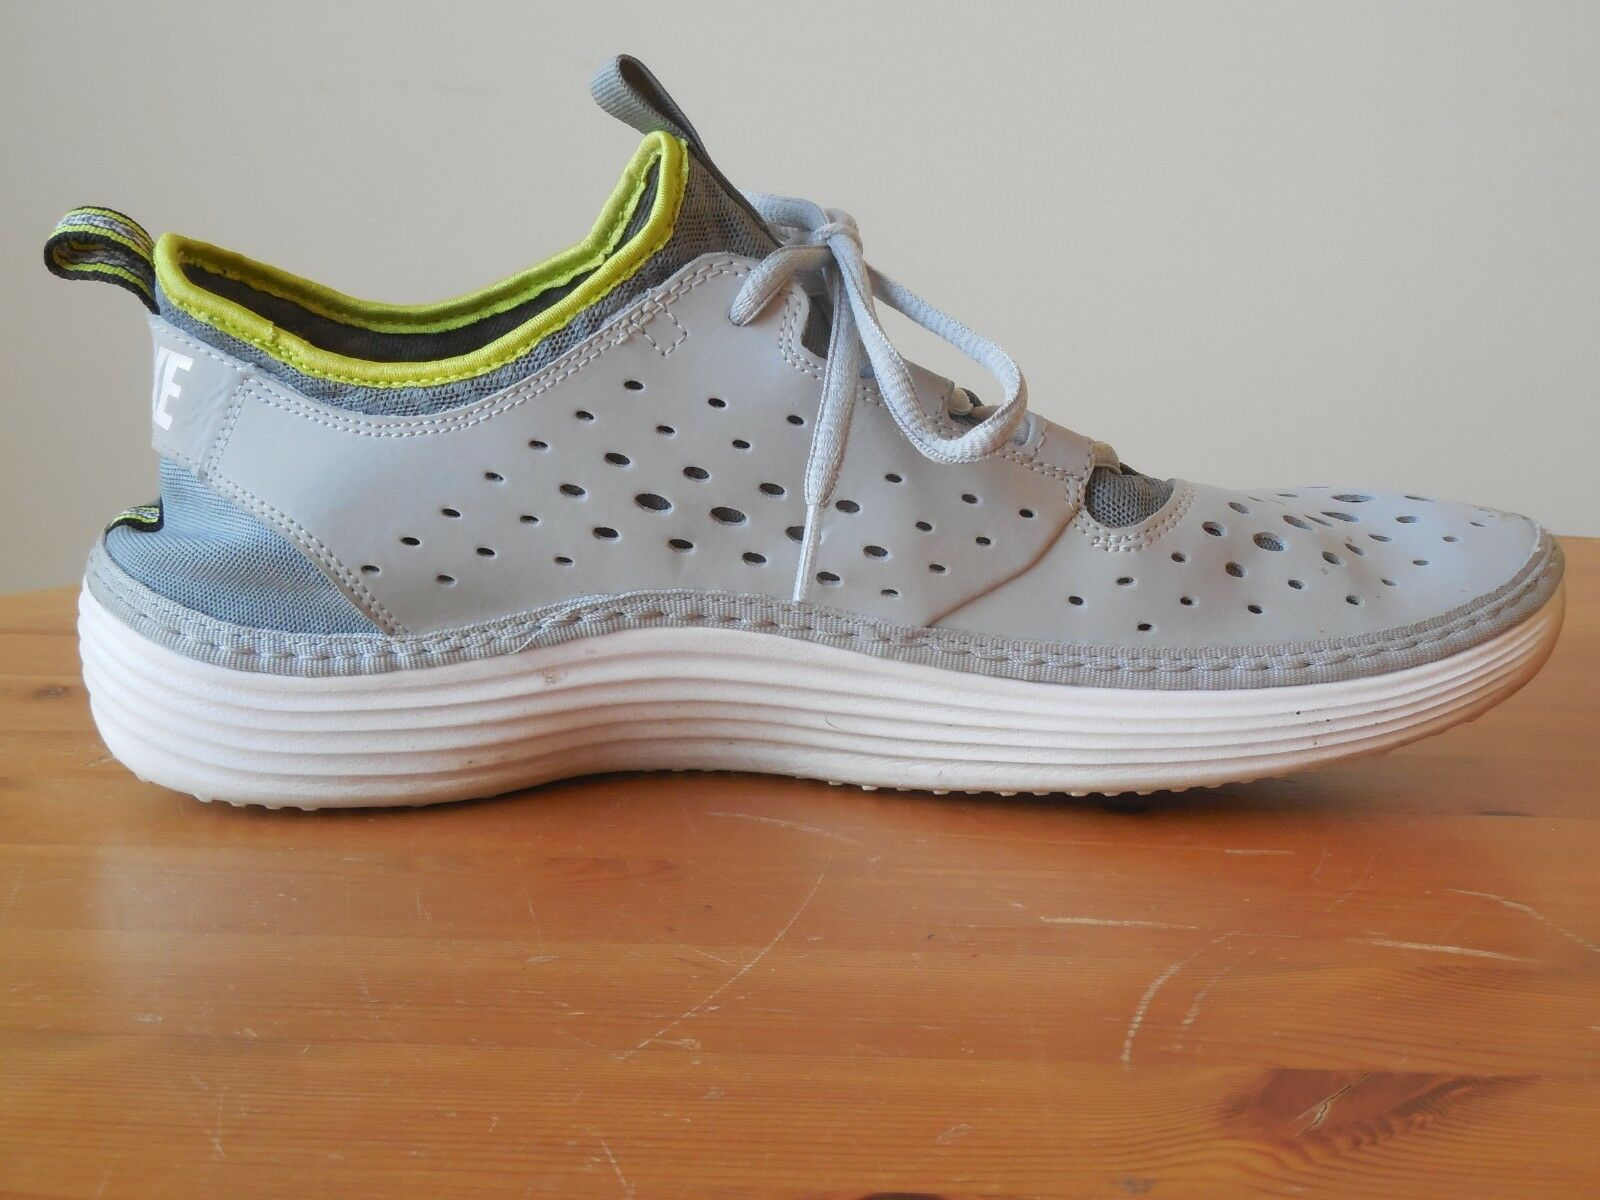 competitive price 238f6 5d14a Nike Solarsoft Moccasin Size 12 Men s White Grey Grey Grey 94db4e